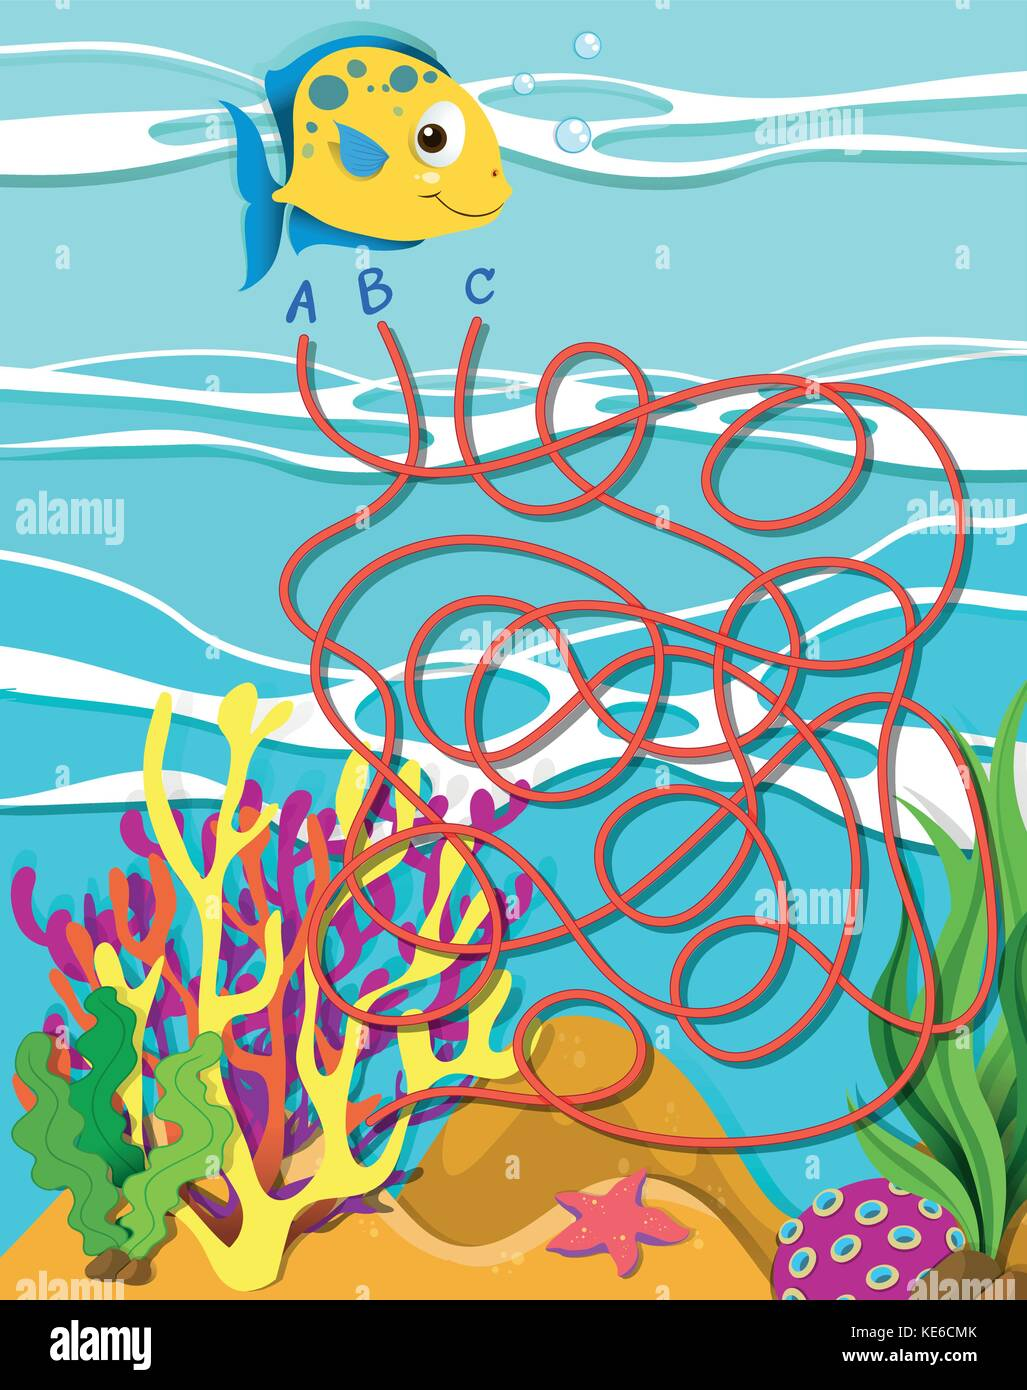 game template with fish and coral reef illustration stock vector art